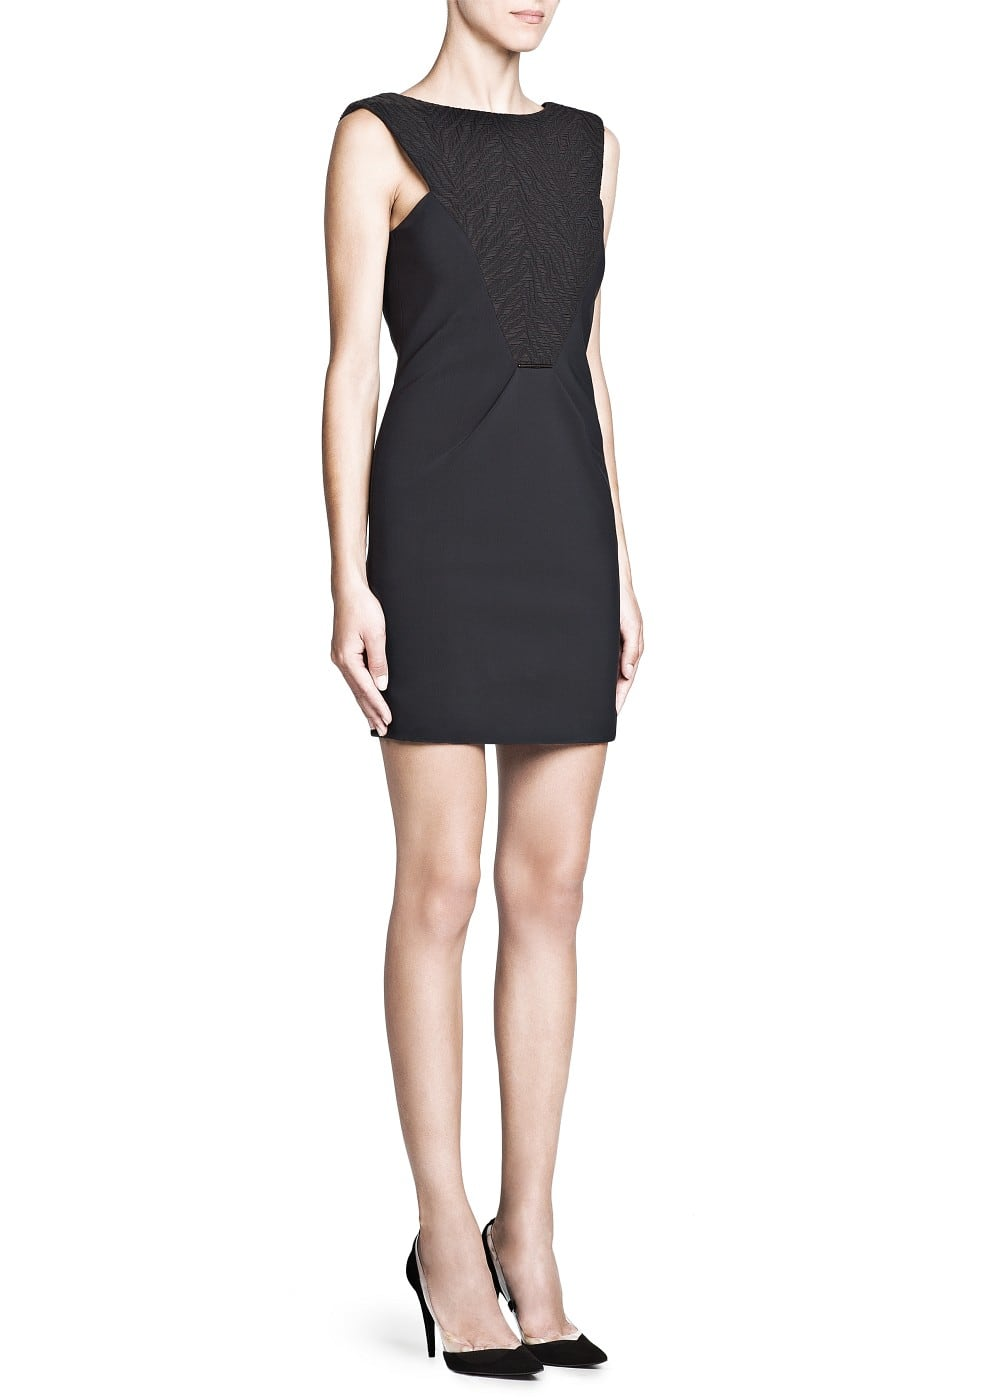 PREMIUM - Jacquard panel structured dress